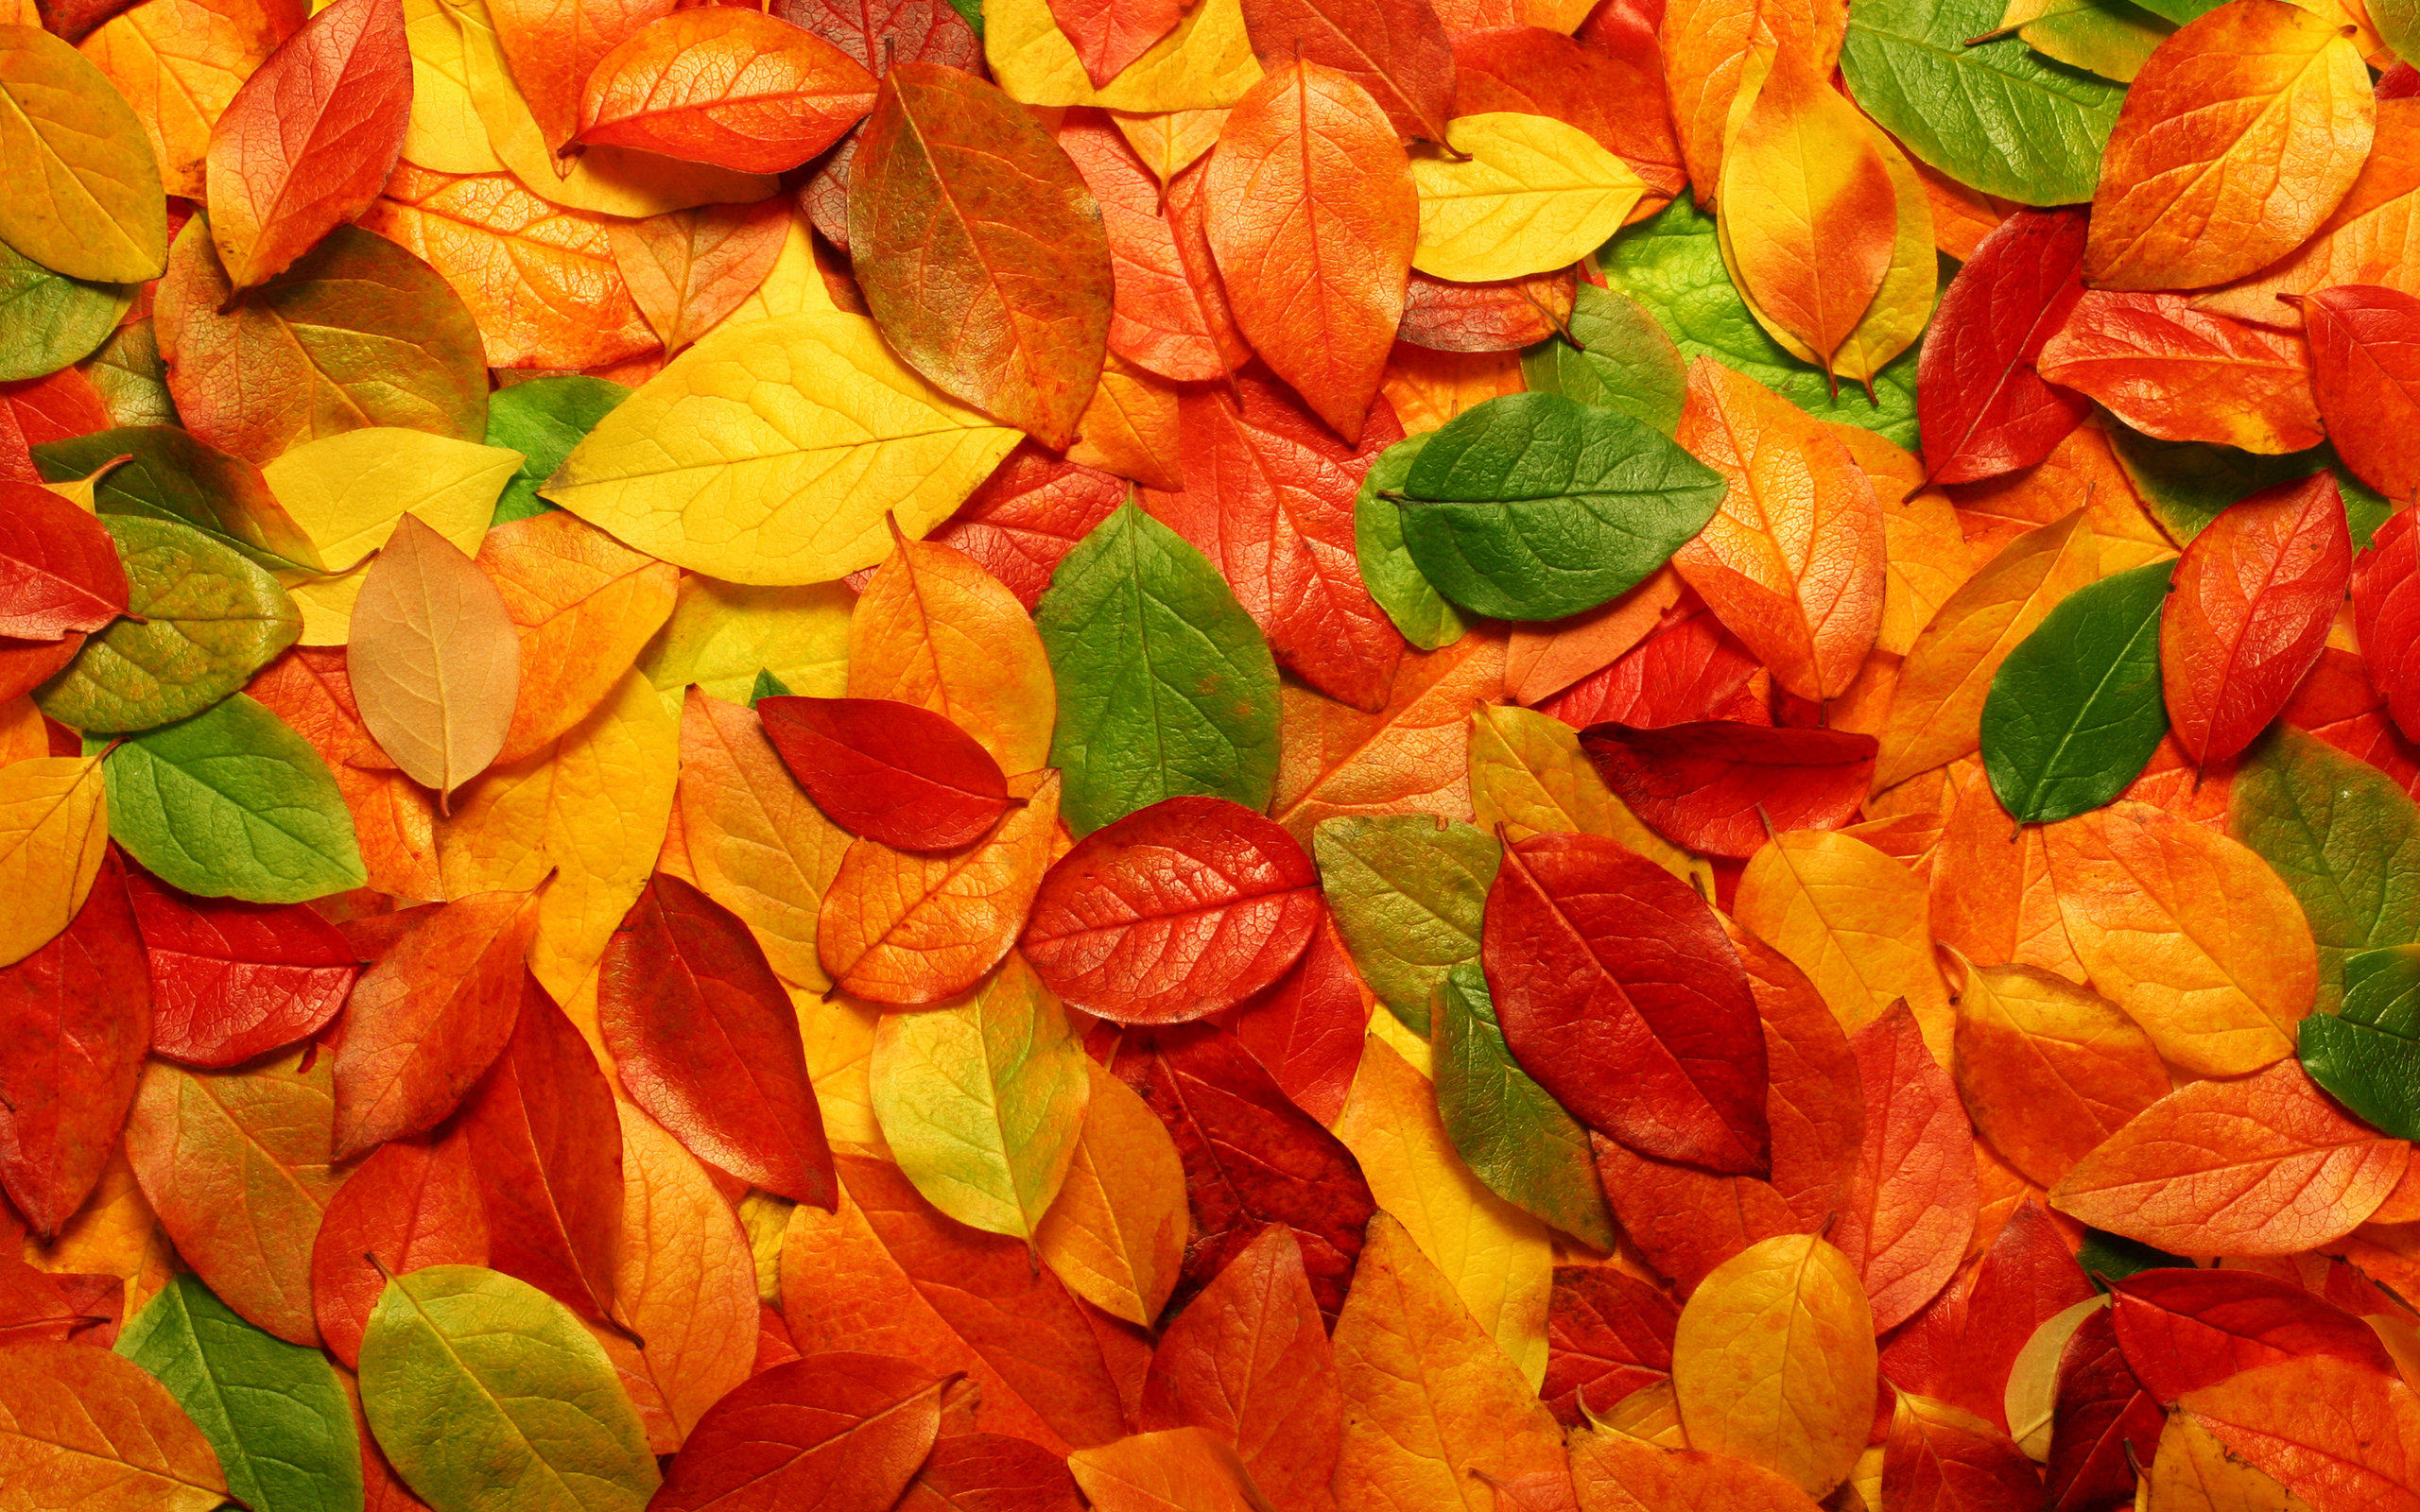 Autumn Leaves Background Wallpapers 2560x1600px